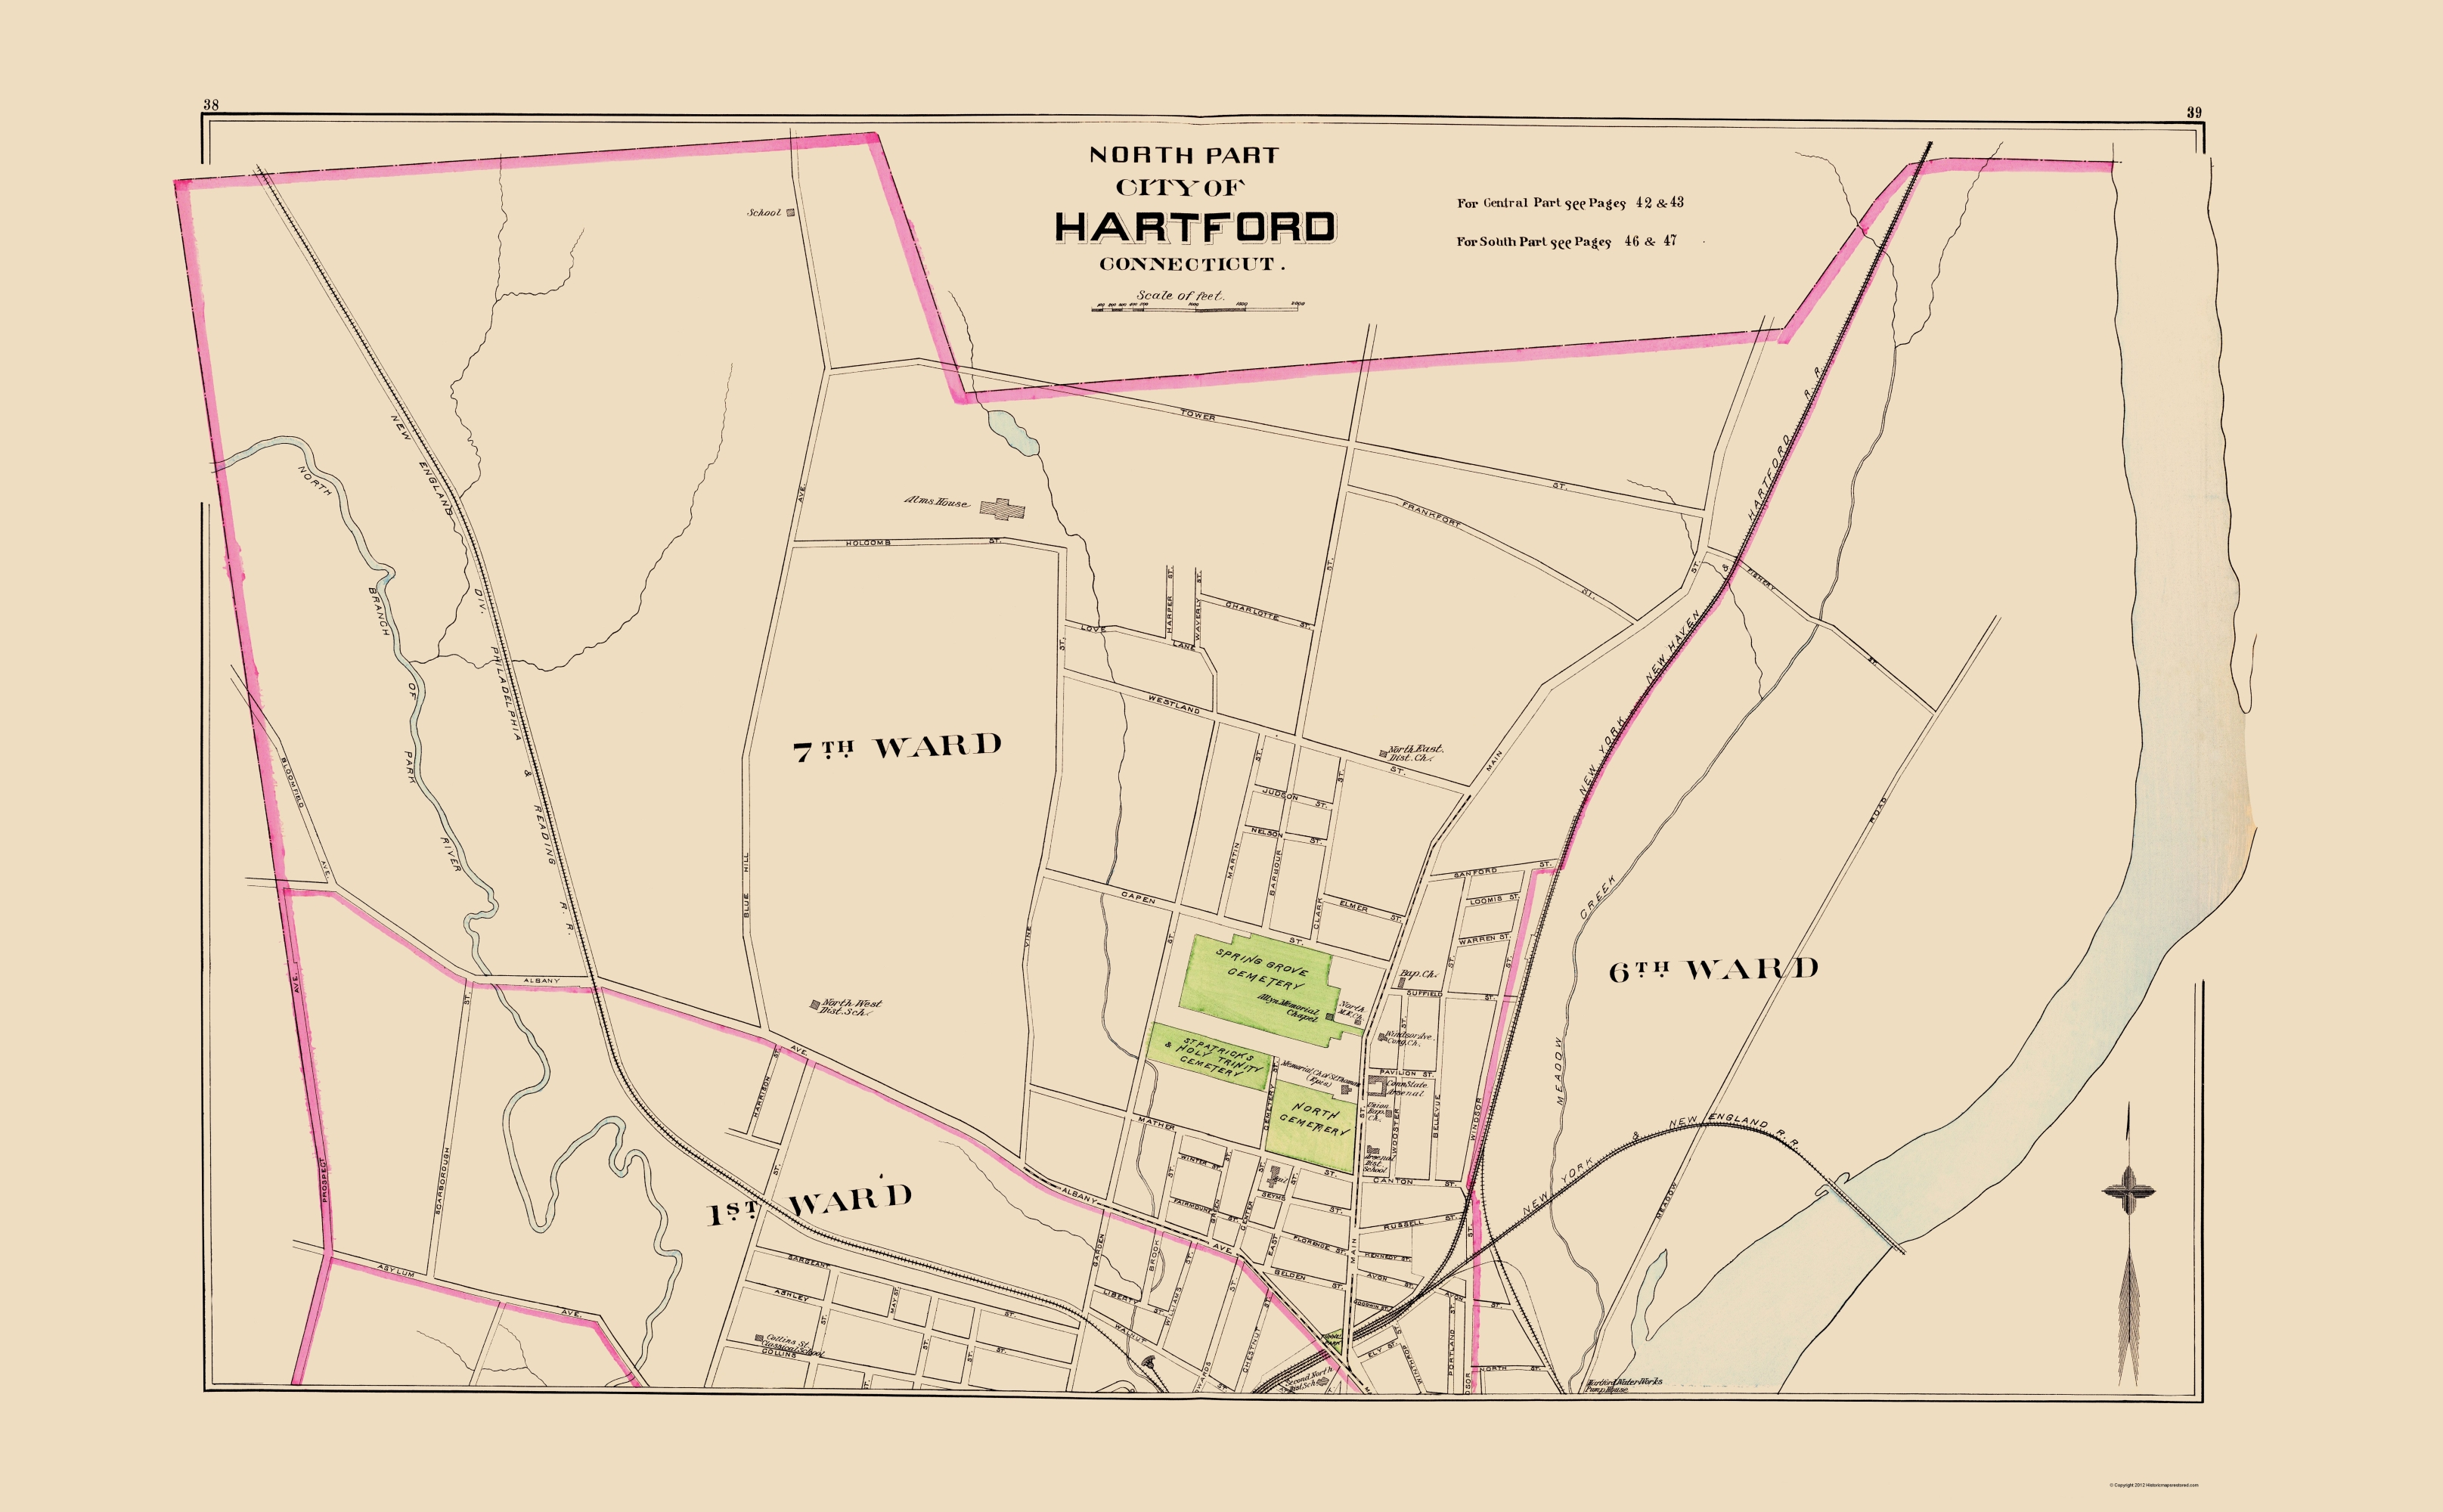 Old City Map - Hartford Connecticut North Part 1893